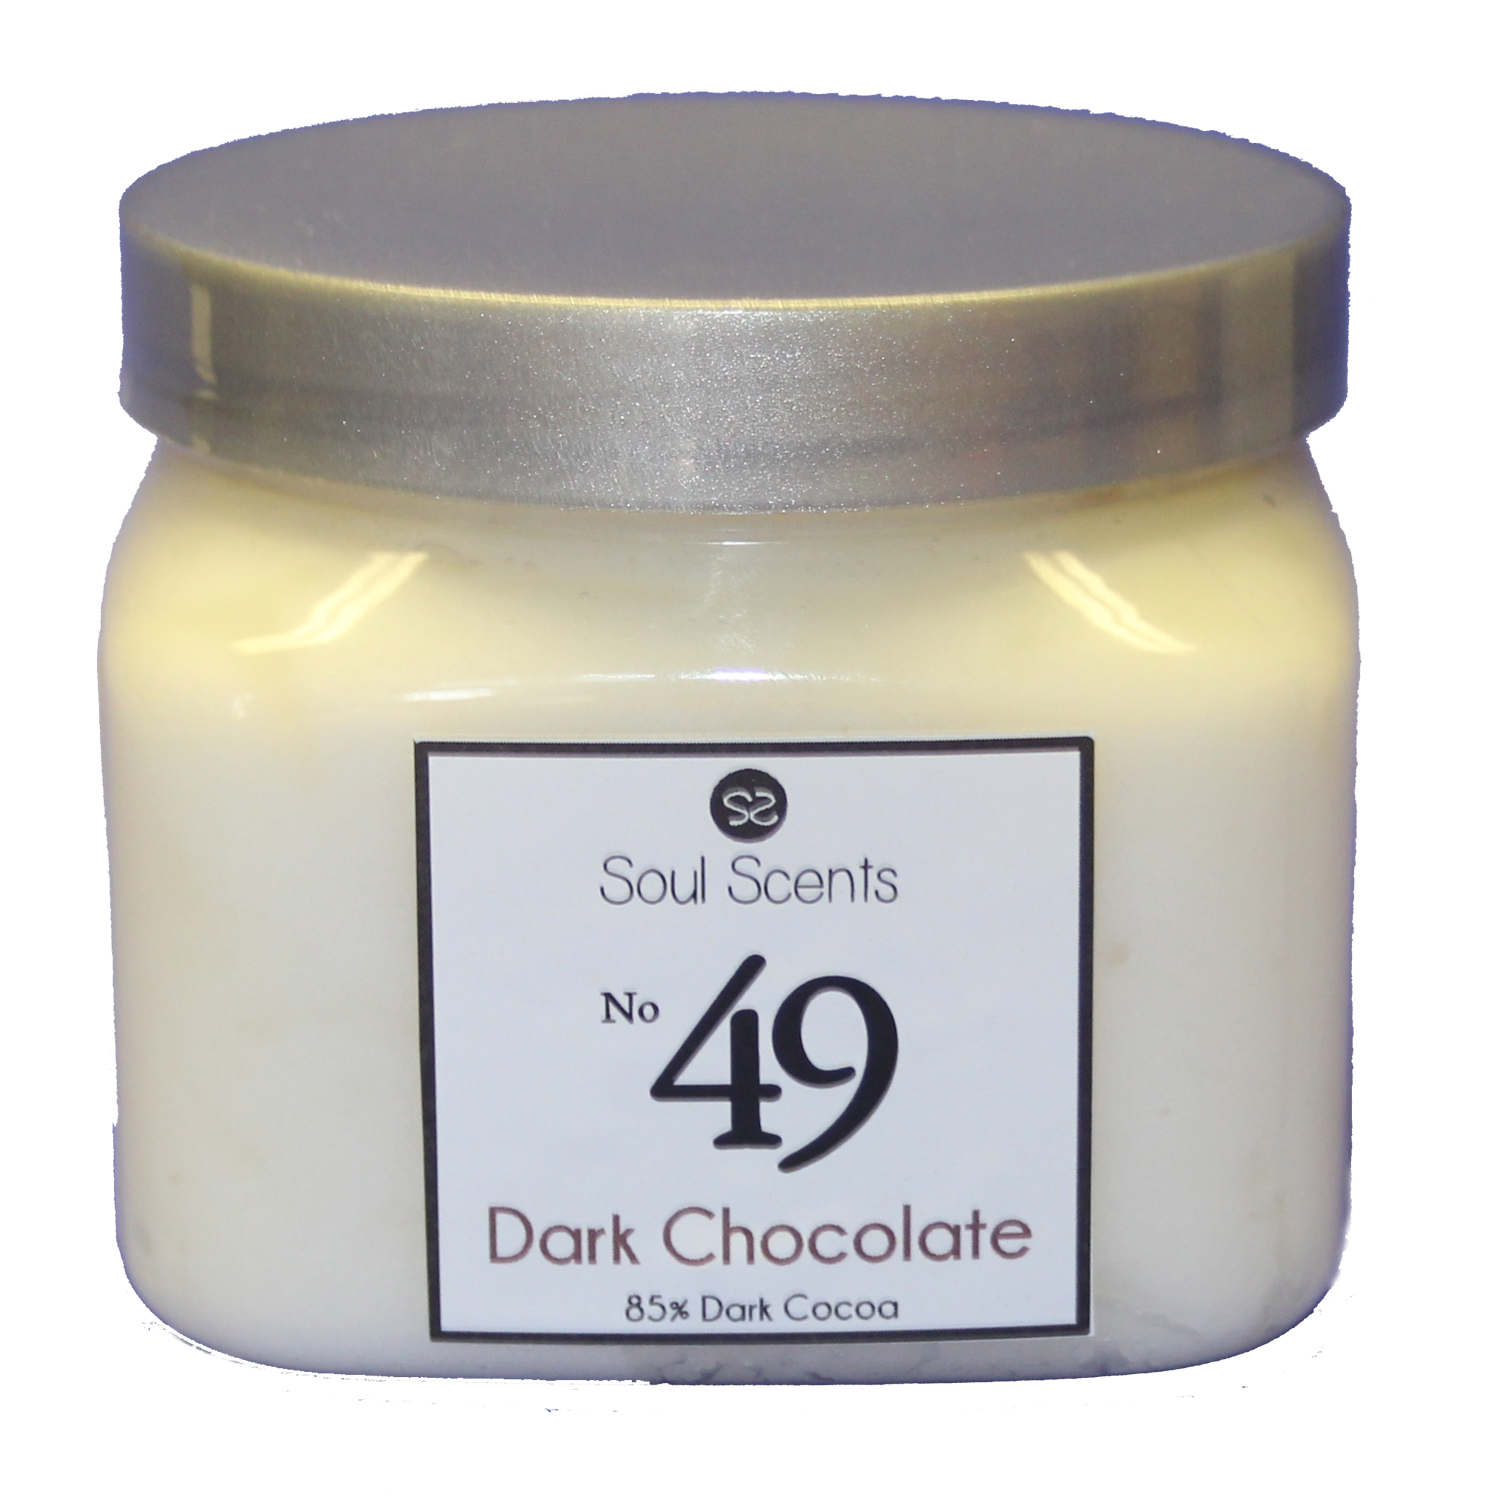 Dark Chocolate #49